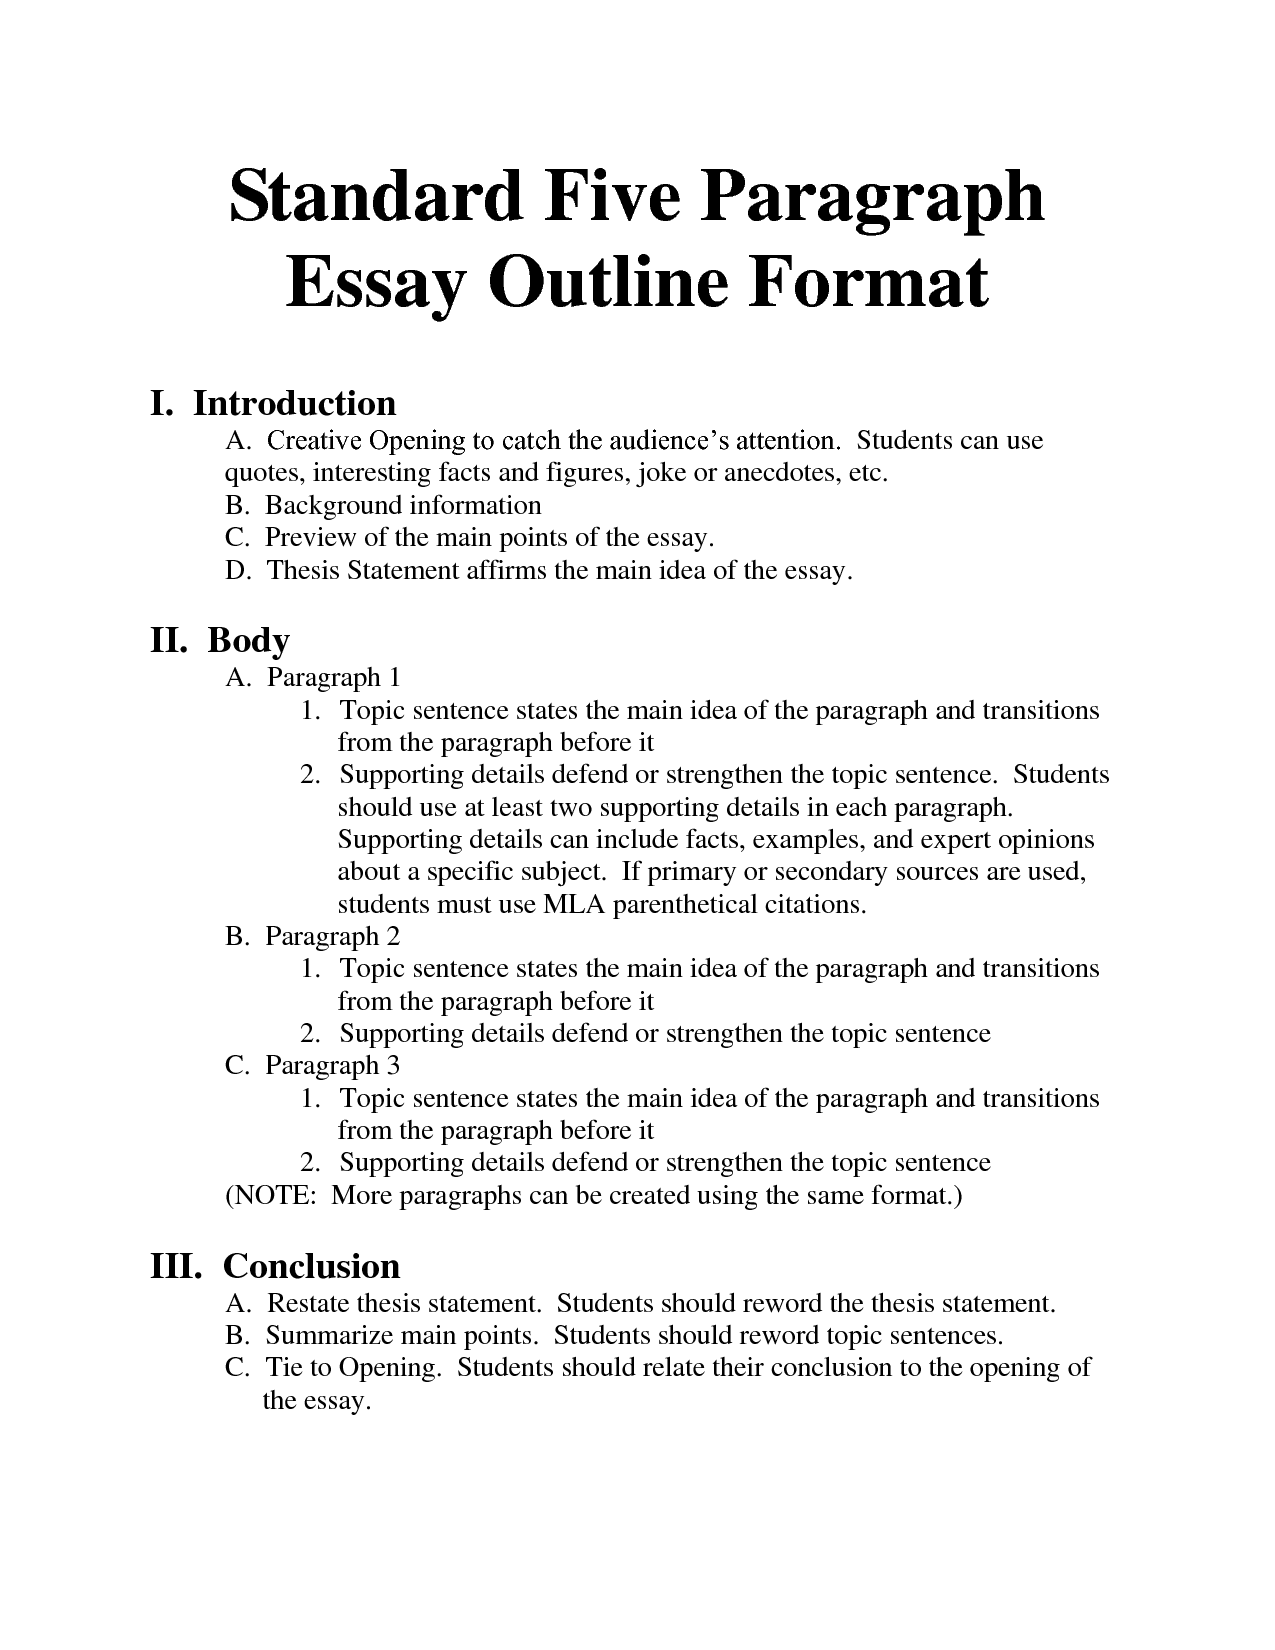 standard essay format bing images essays homeschool standard essay format bing images writing papers